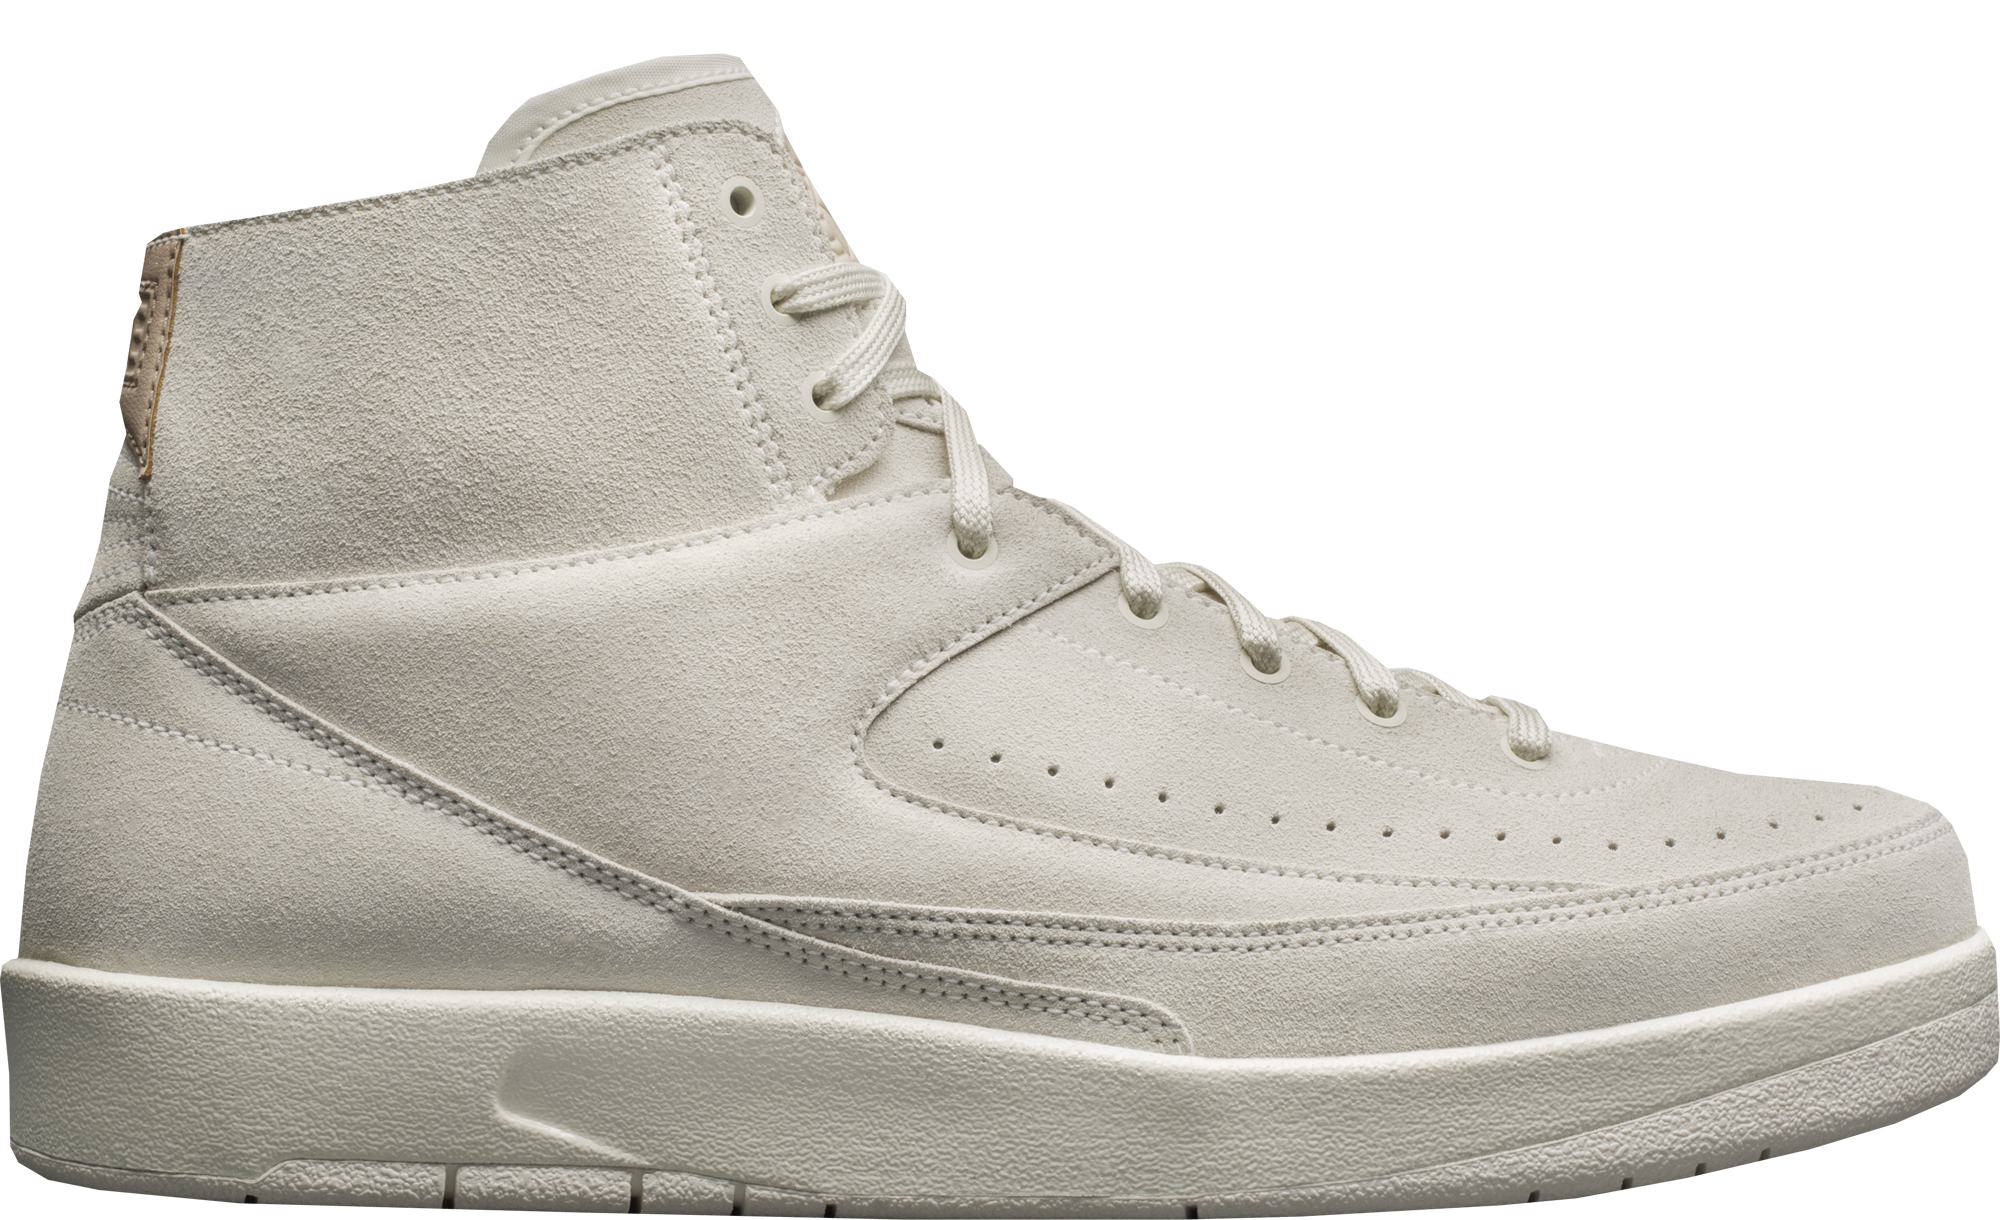 Jordan 2 Retro Decon Sail